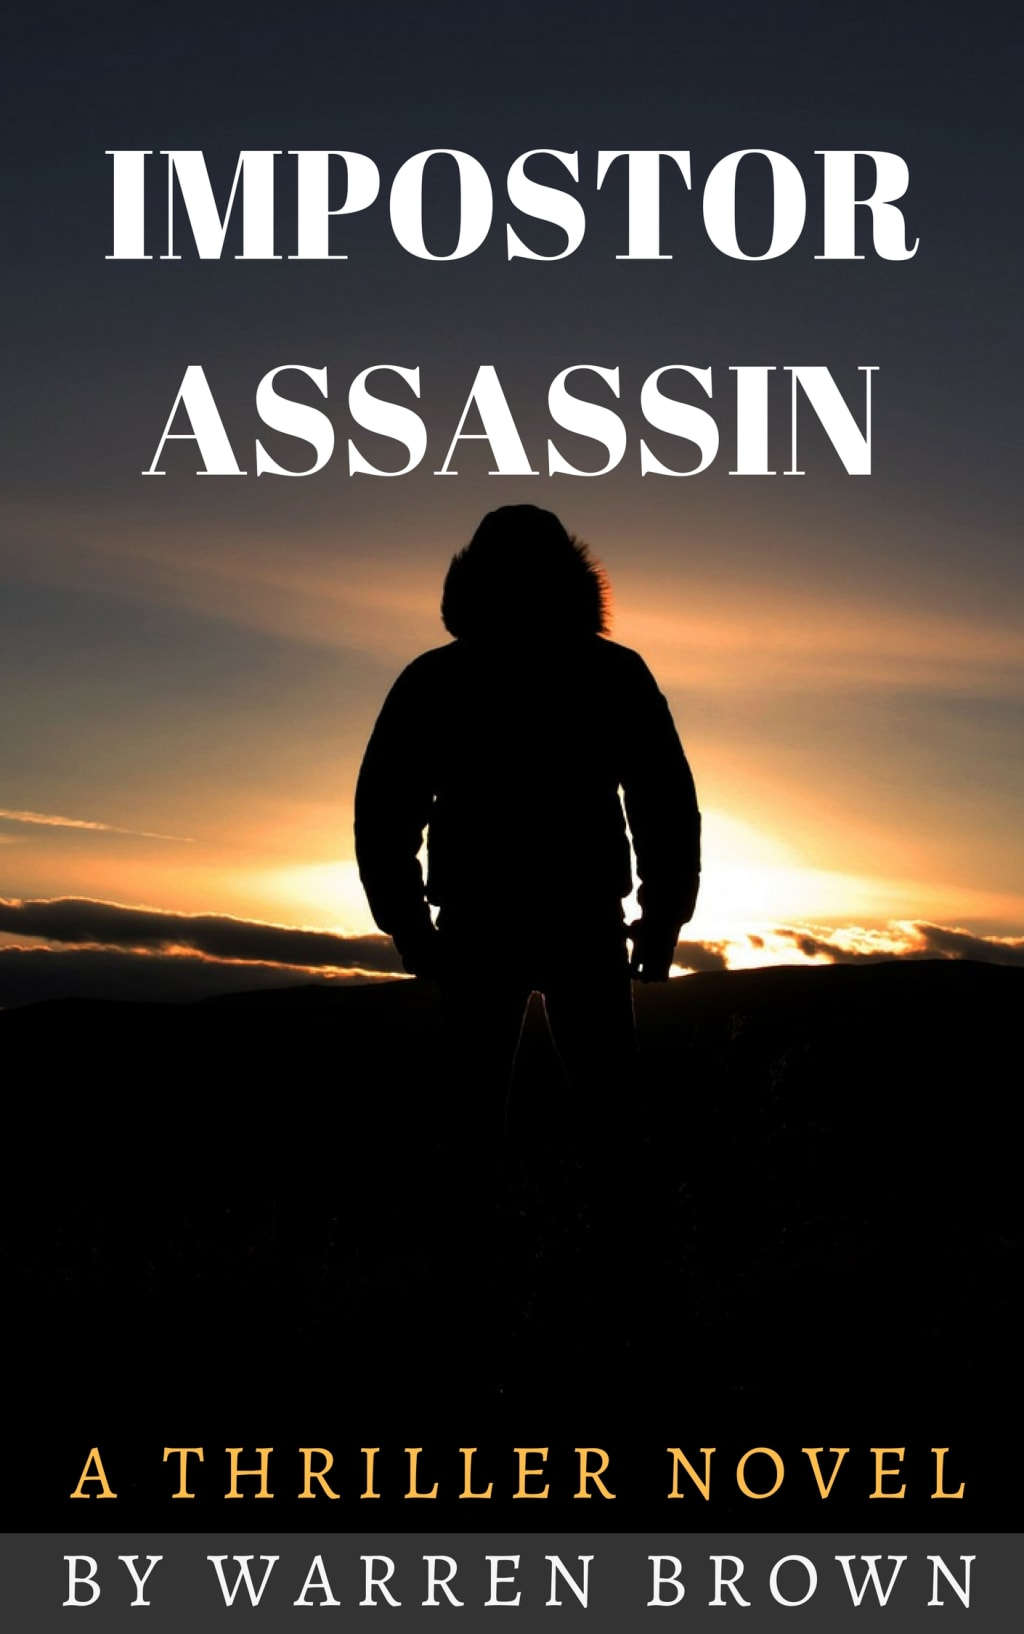 'Impostor Assassin' - The Thriller Novel